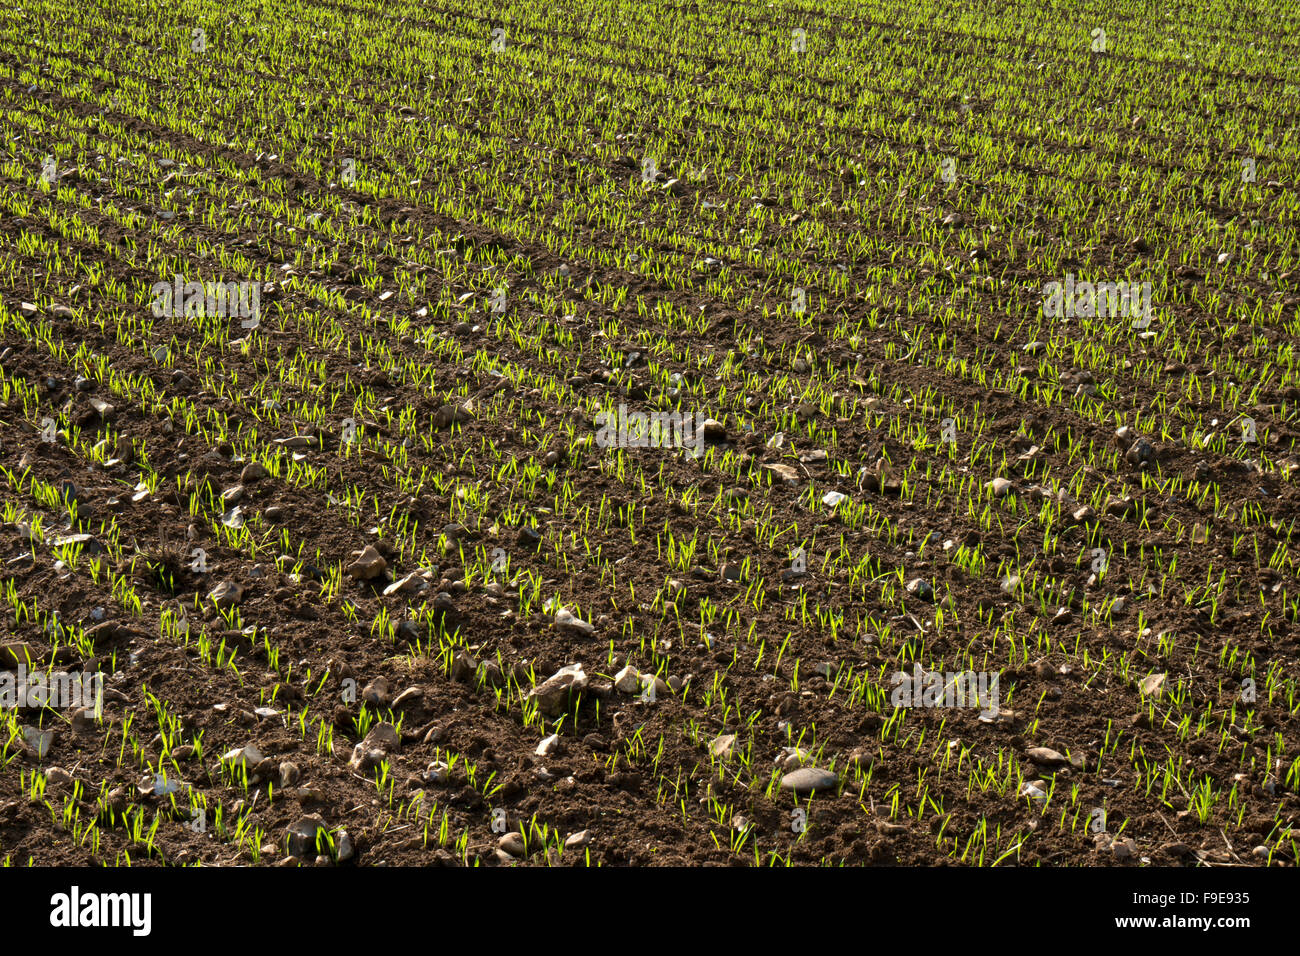 Crop growing in stony ground field, Norfolk,England - Stock Image